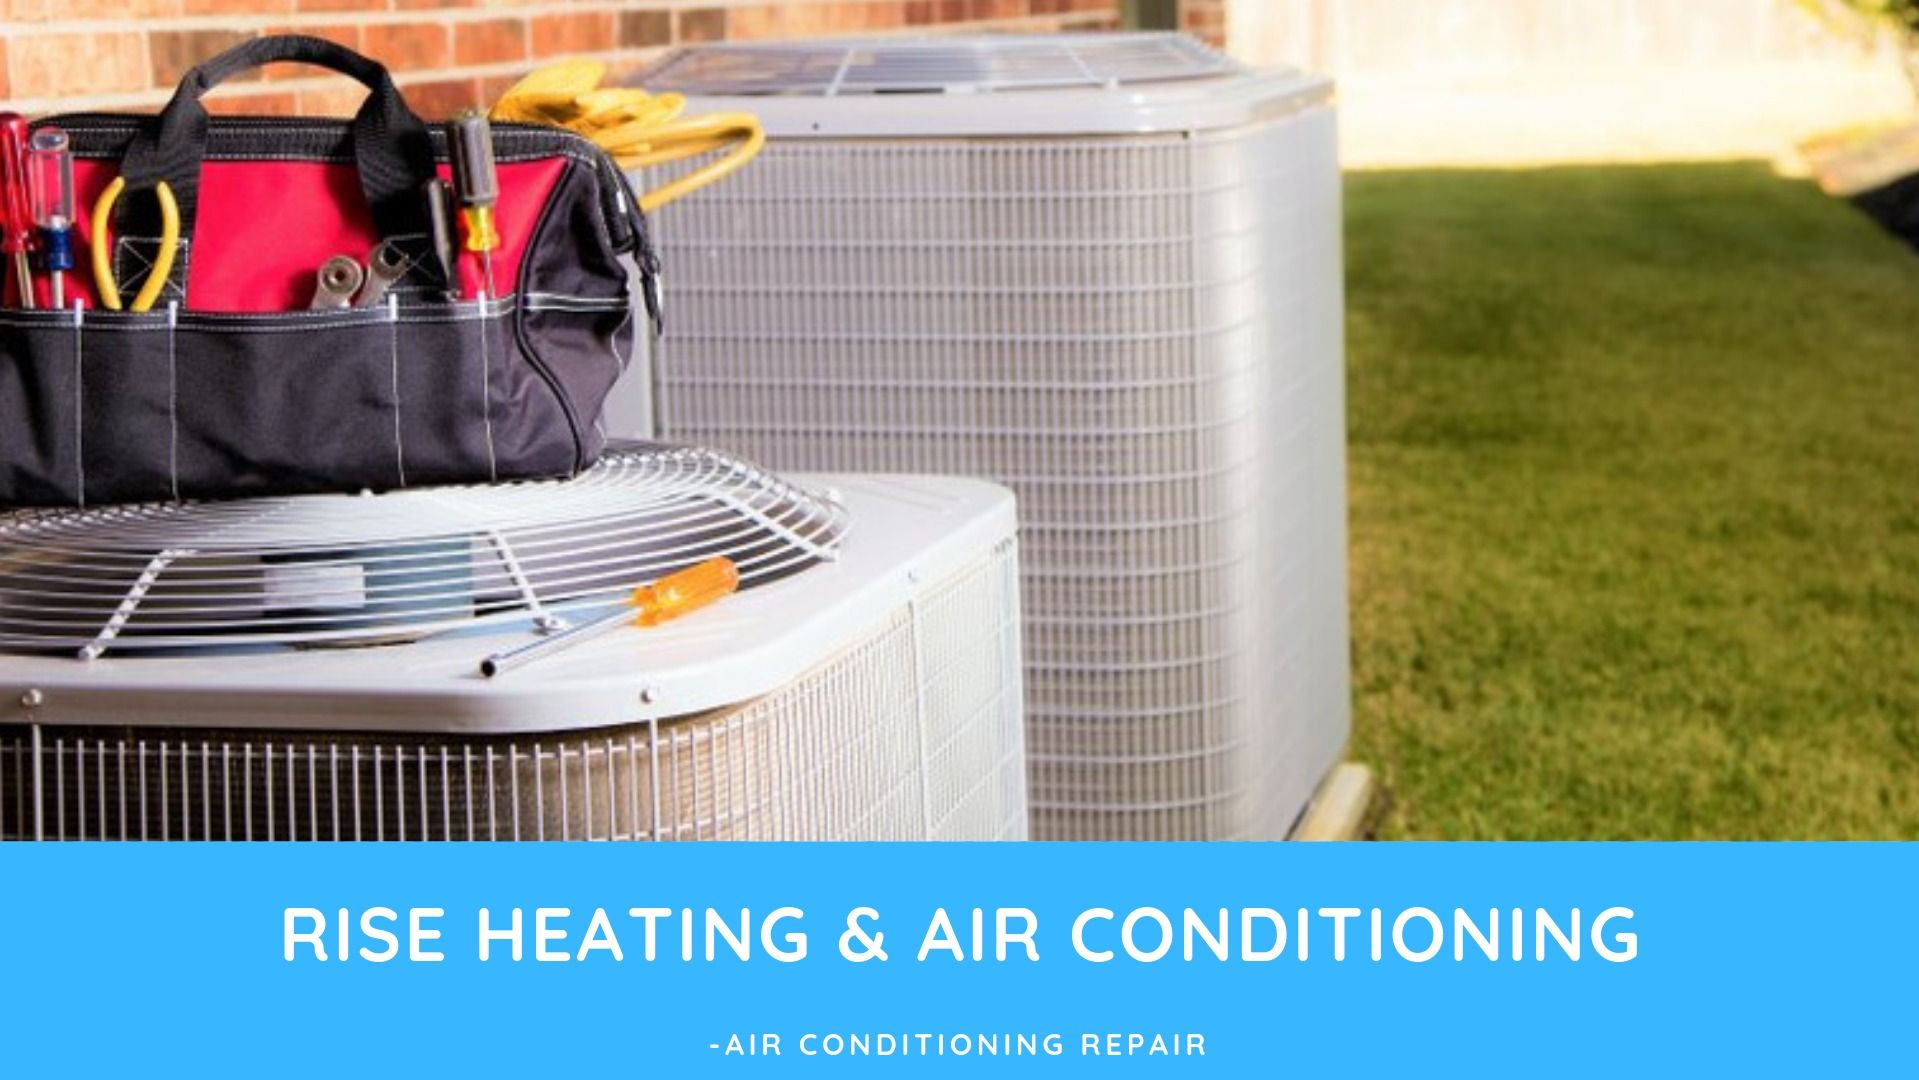 Air Conditioning Installation Denver CO Heating and air